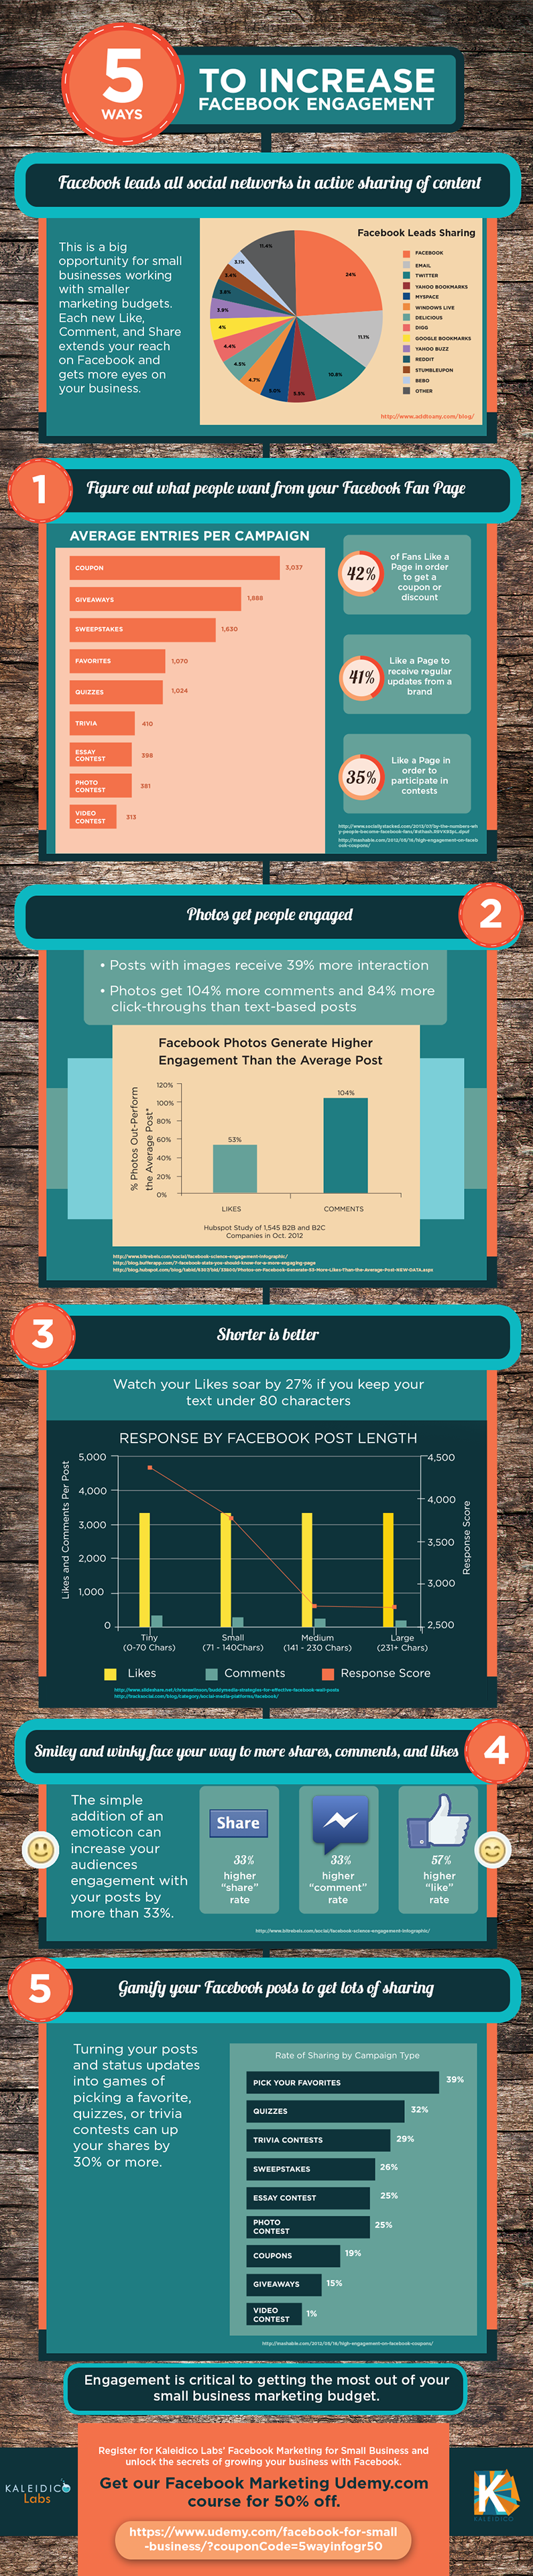 How to Increase Facebook Engagement - infographic